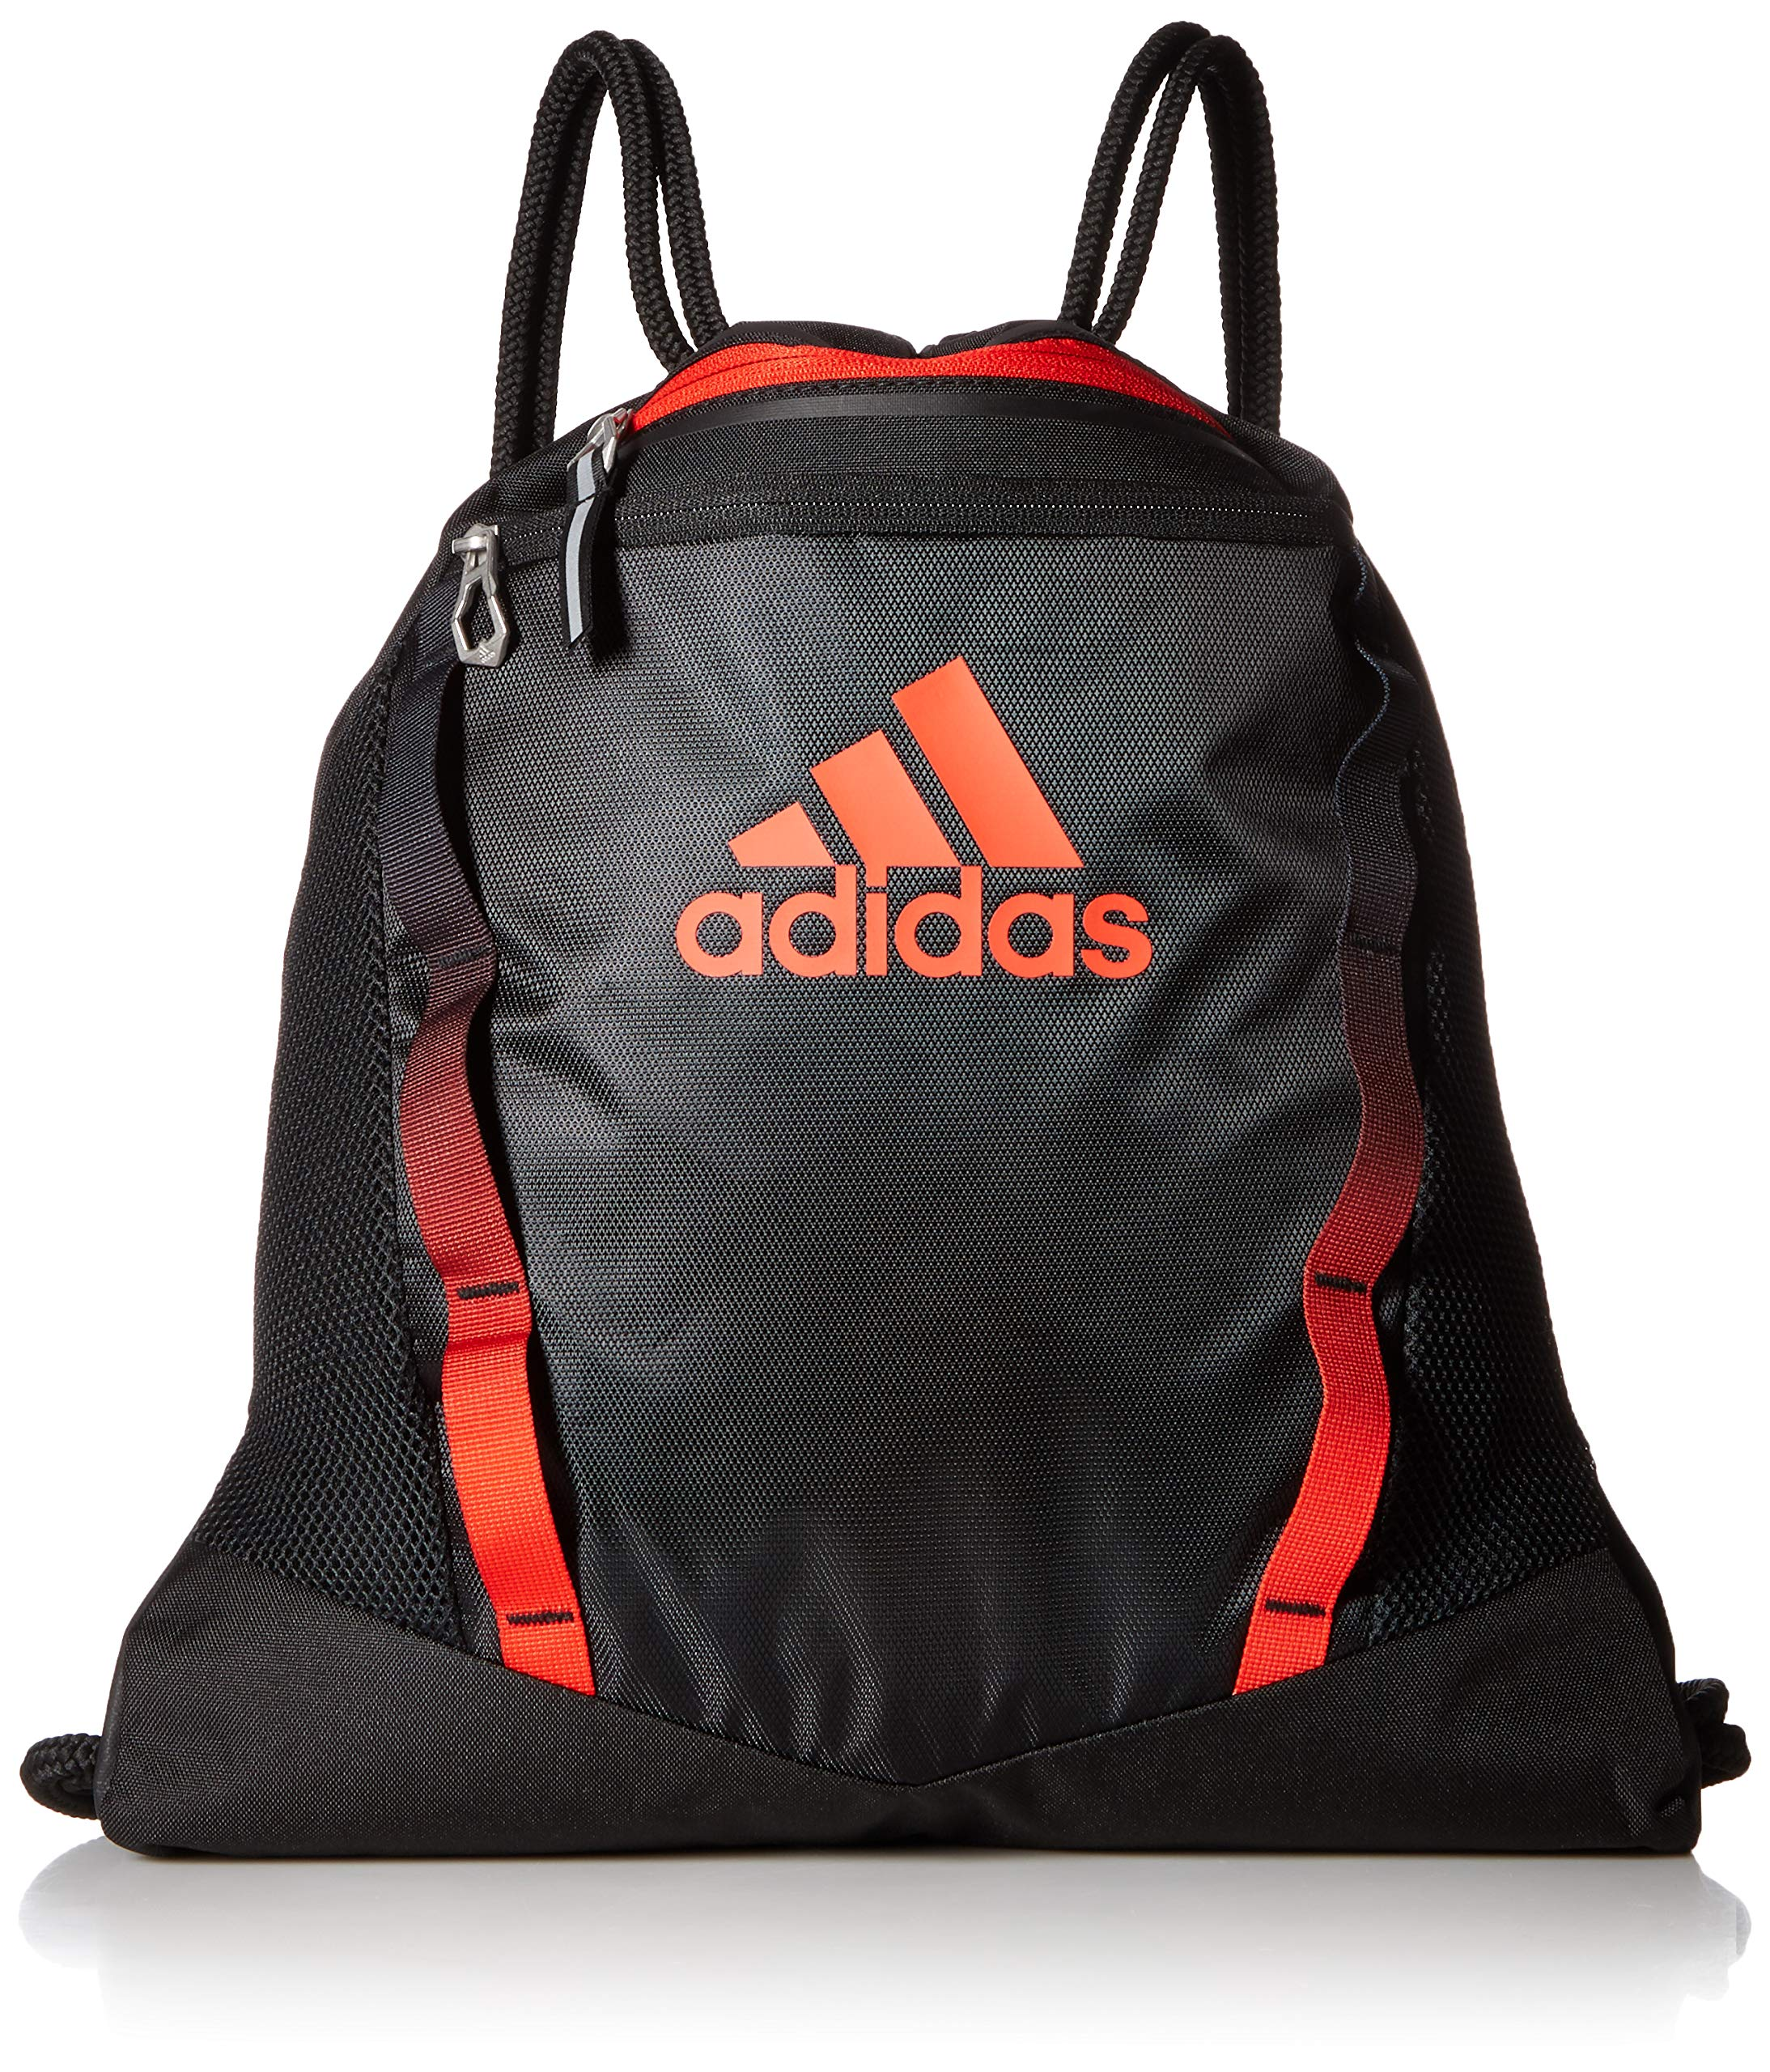 adidas Rumble II Sackpack, Black/Active Red, One Size